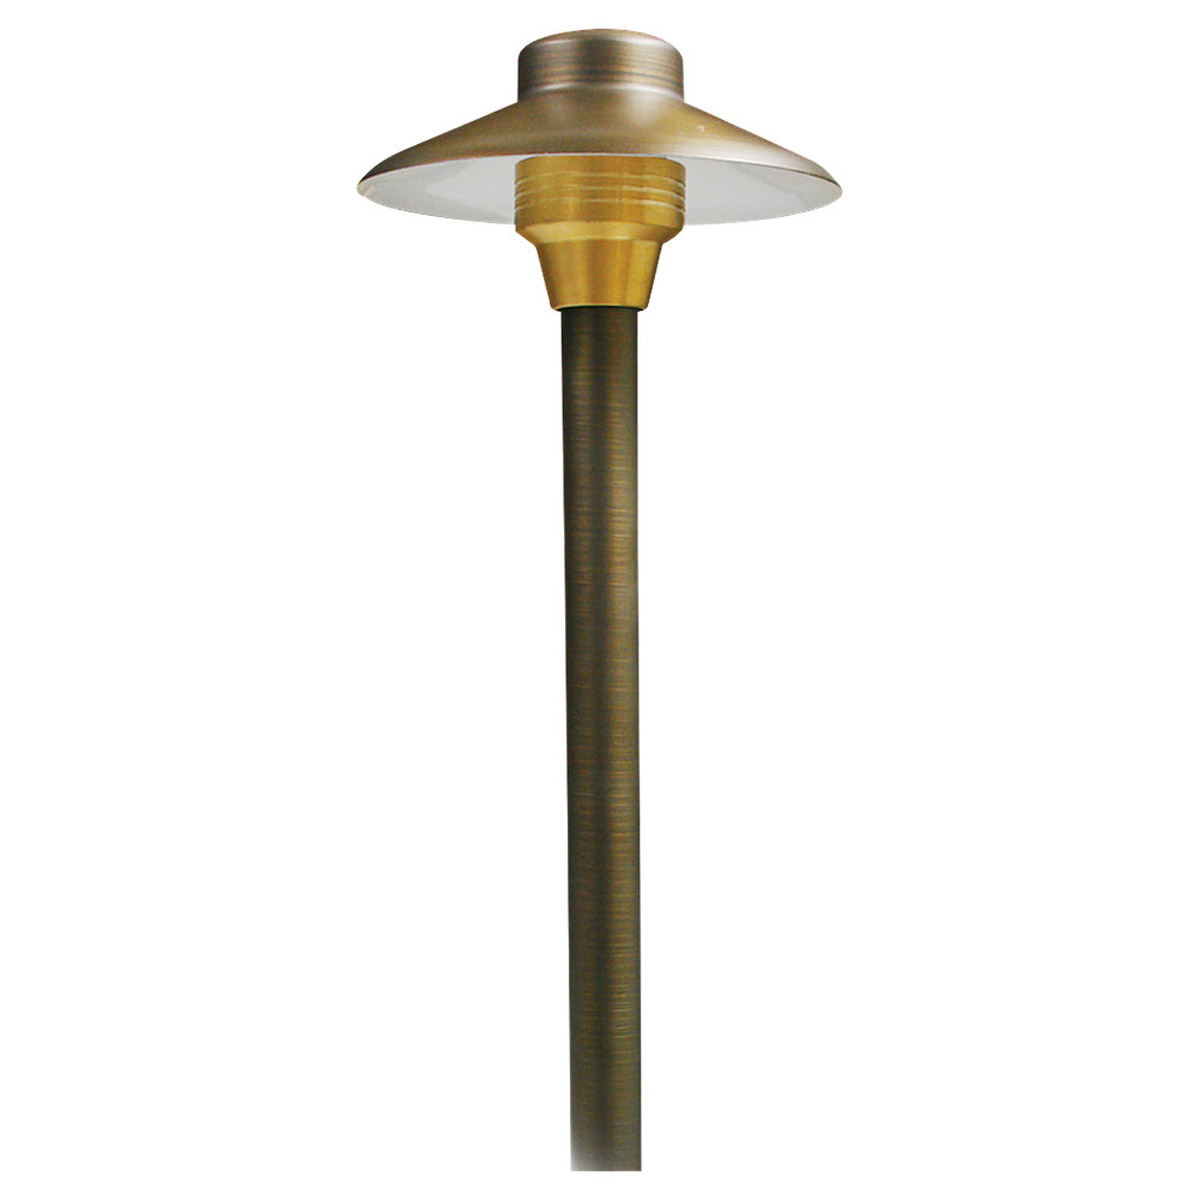 Sea Gull Lighting Meridian 1 Light Landscape Path Light in Weathered Brass 91176-147 photo